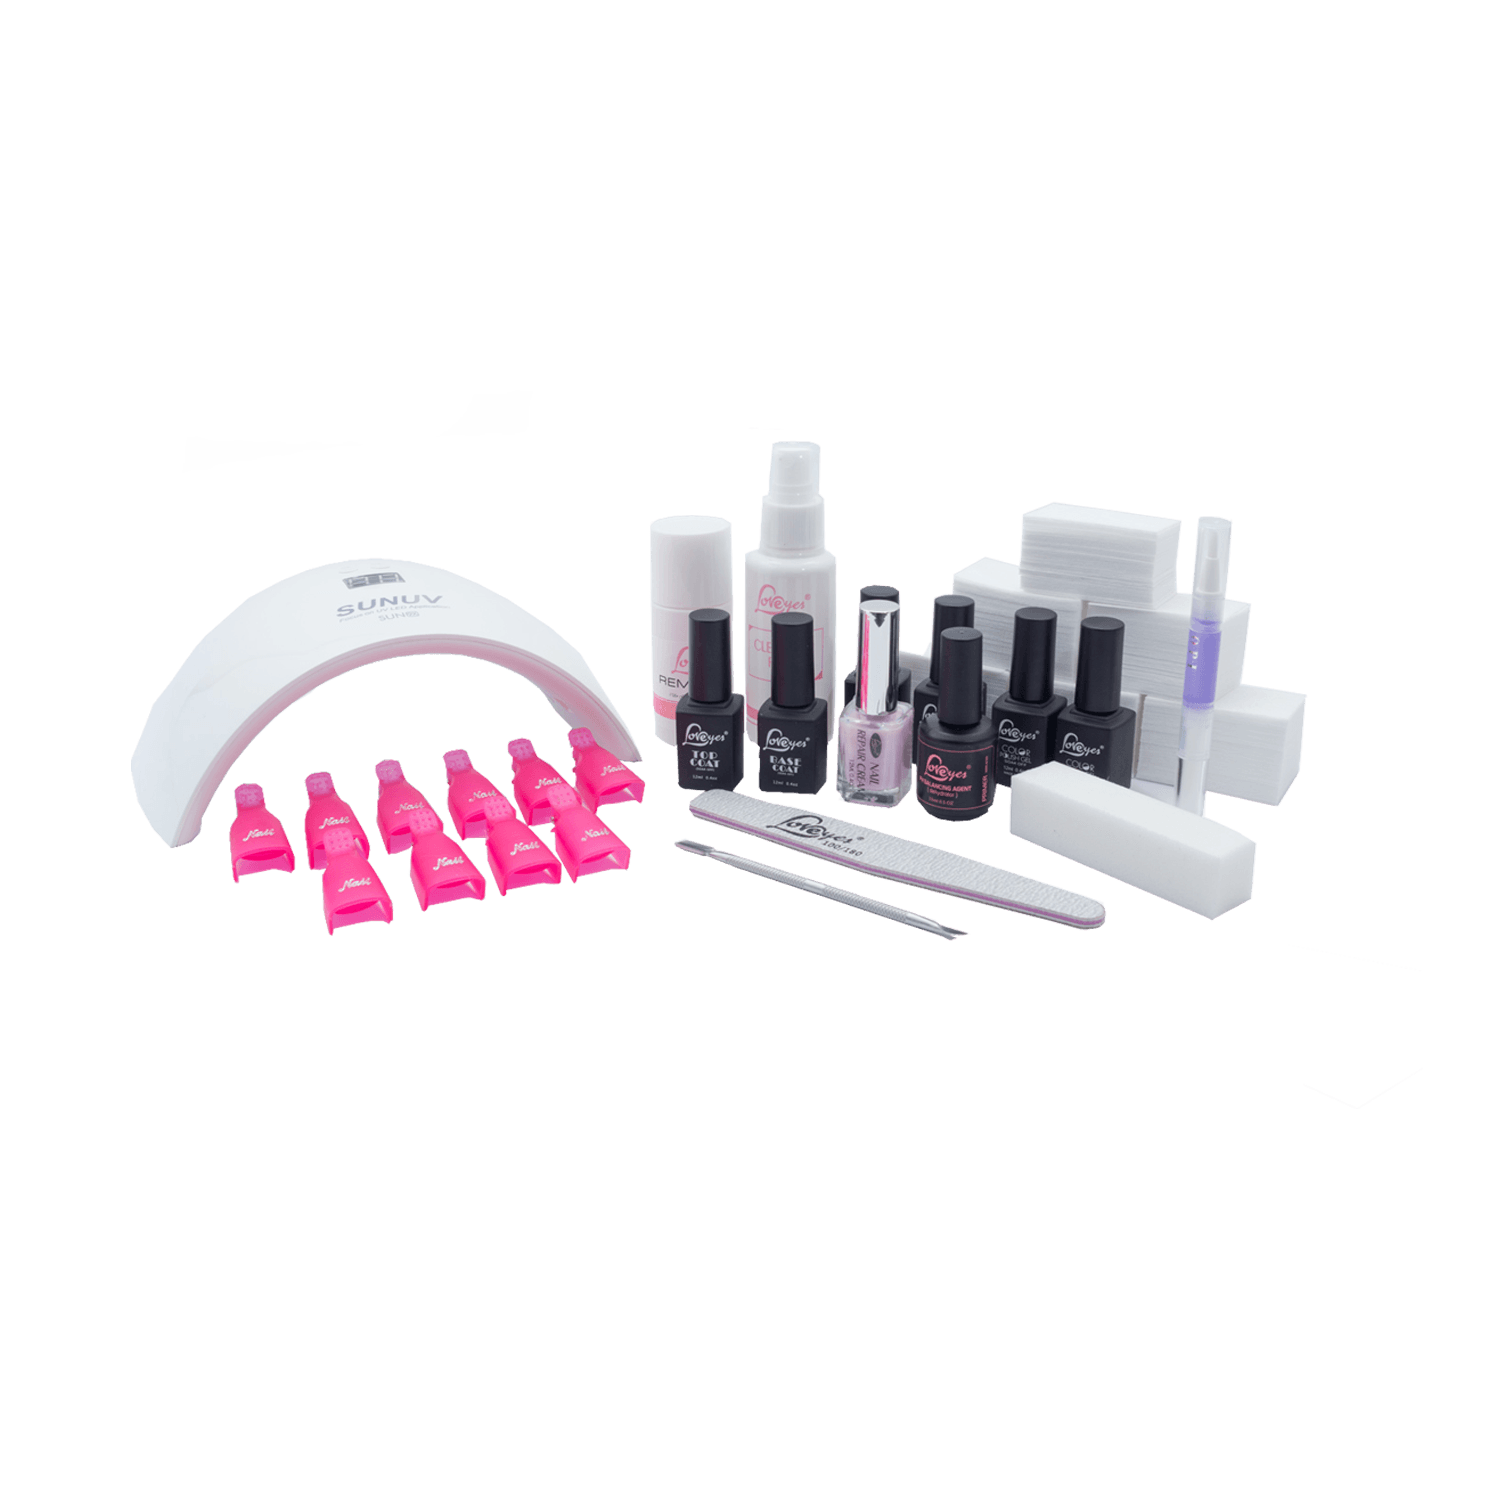 Lampara Led Para Uñas Esmaltado Permanente Para Uñas Kit Lampara Led Uv 24w